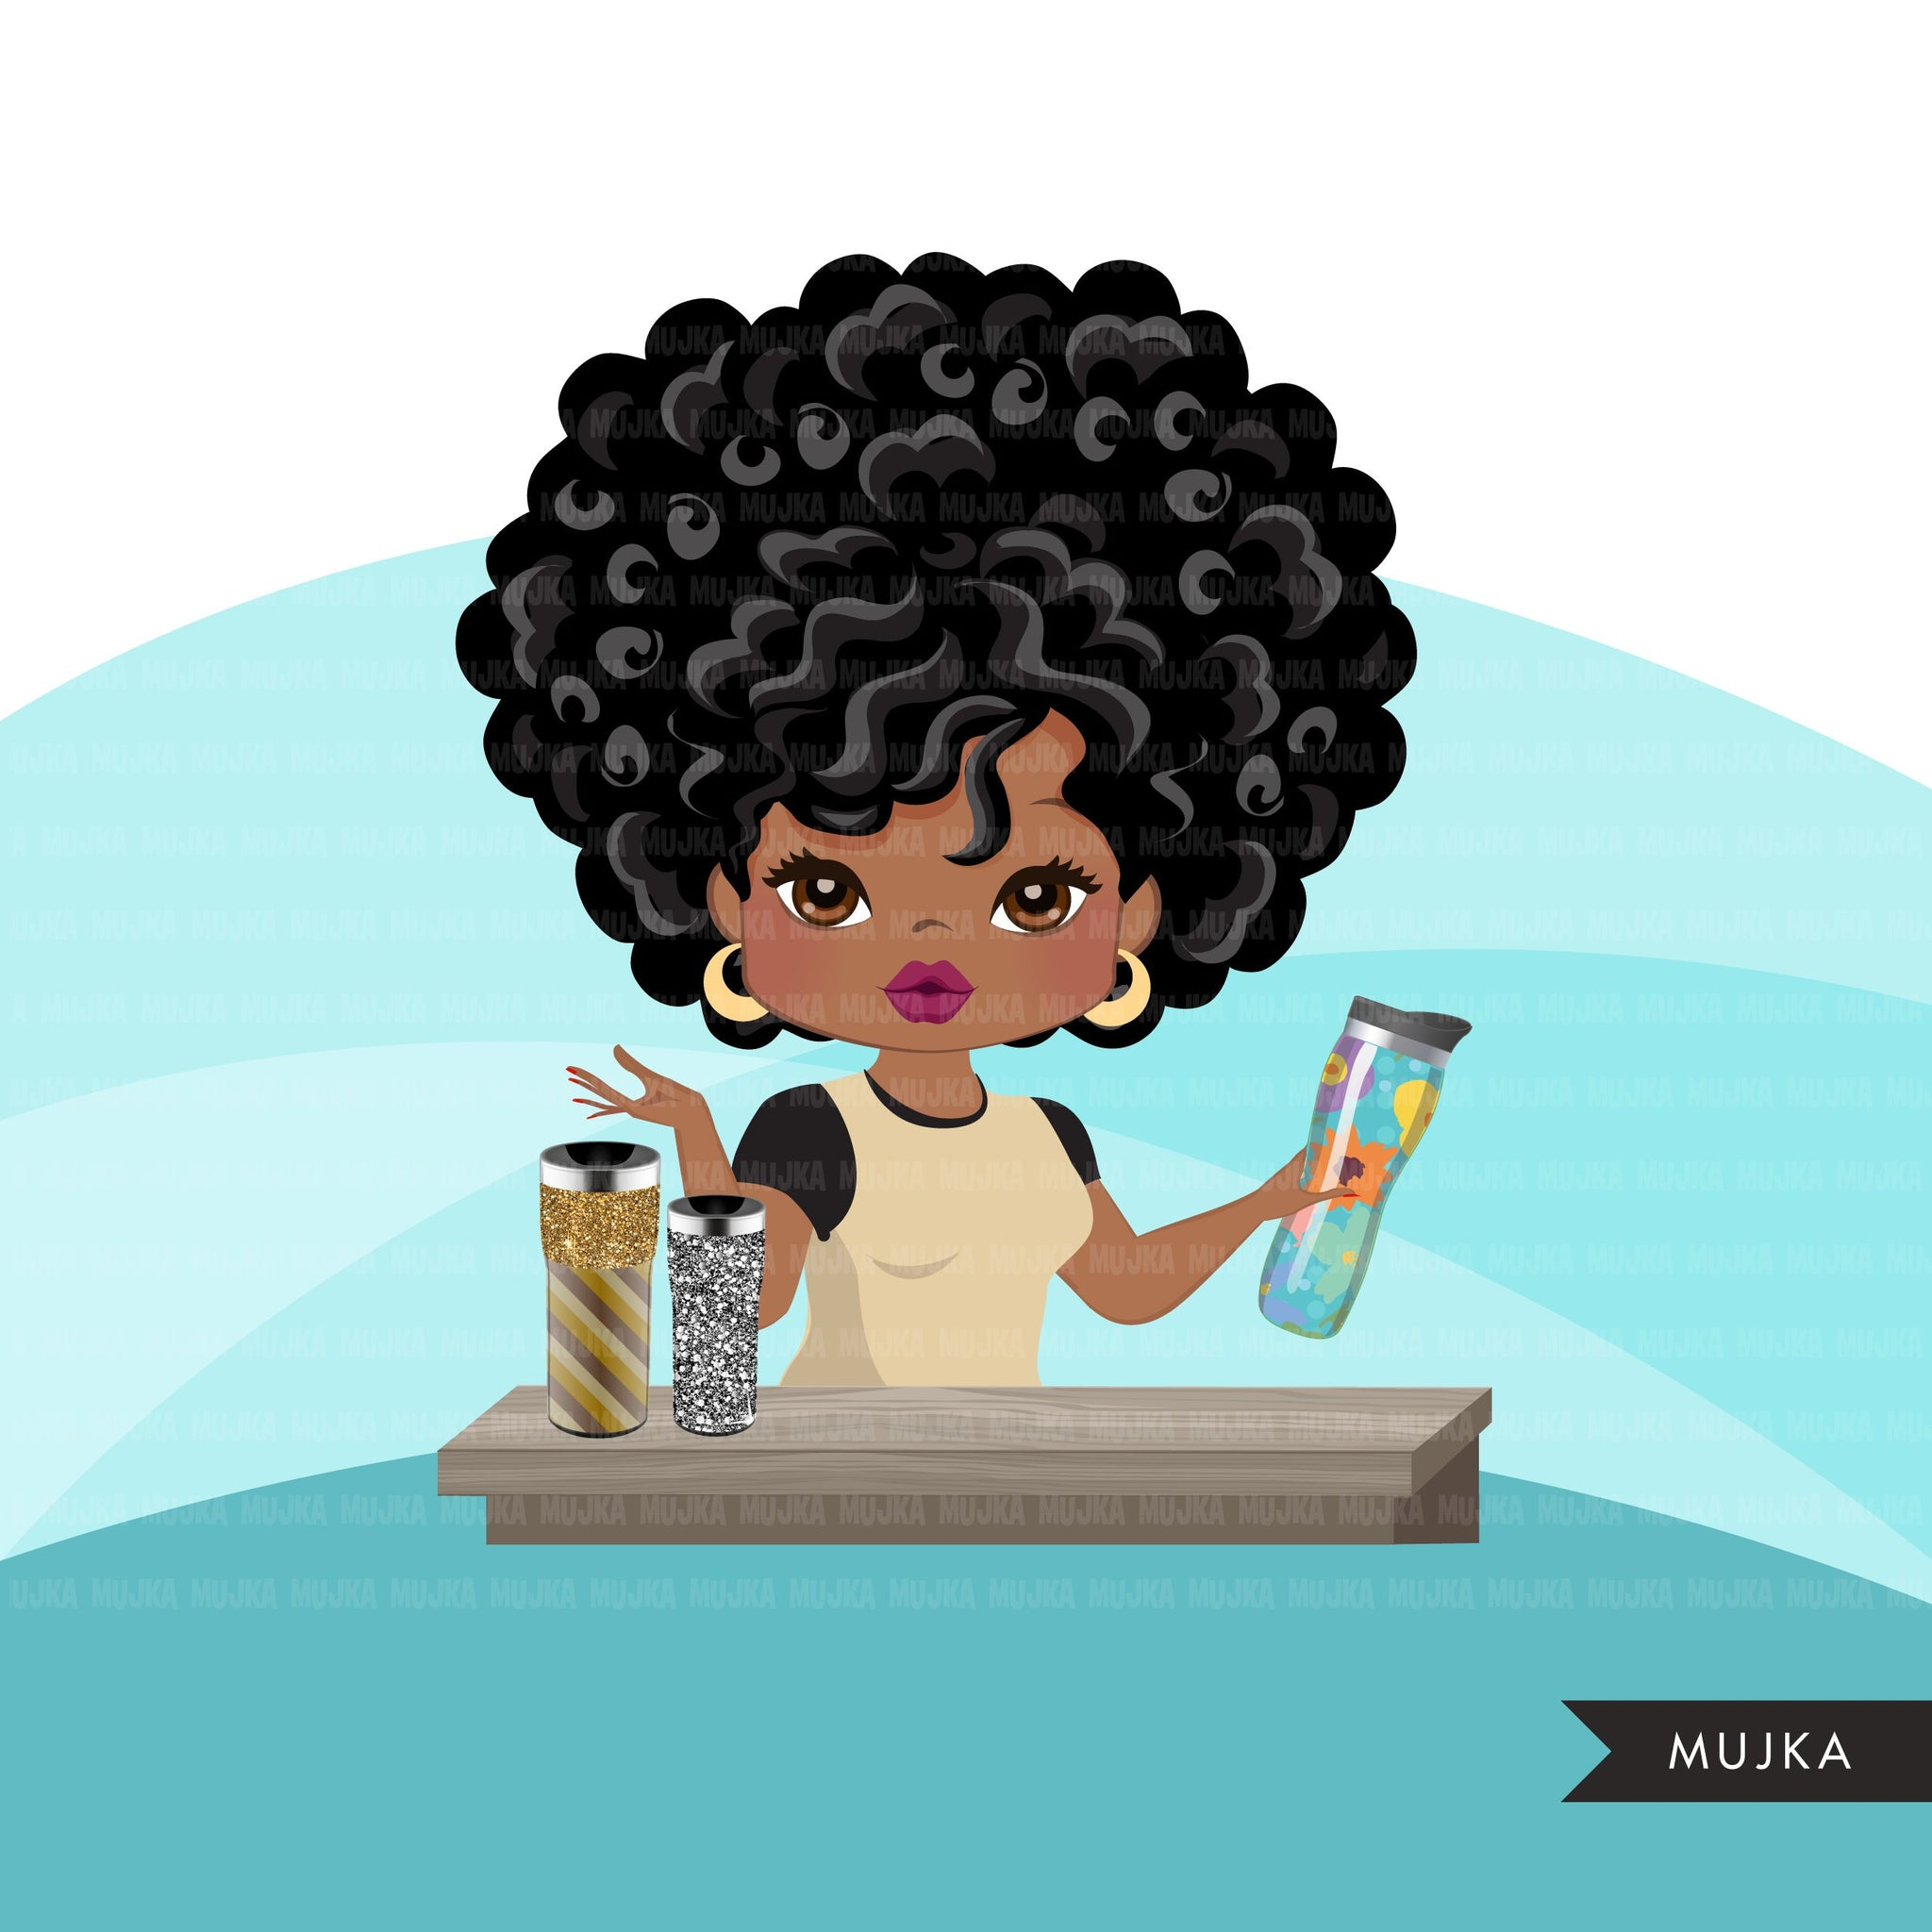 Afro Boss Woman tumbler designer avatar clipart with glitter tumblers, print and cut, crafty maker boss black girl clip art